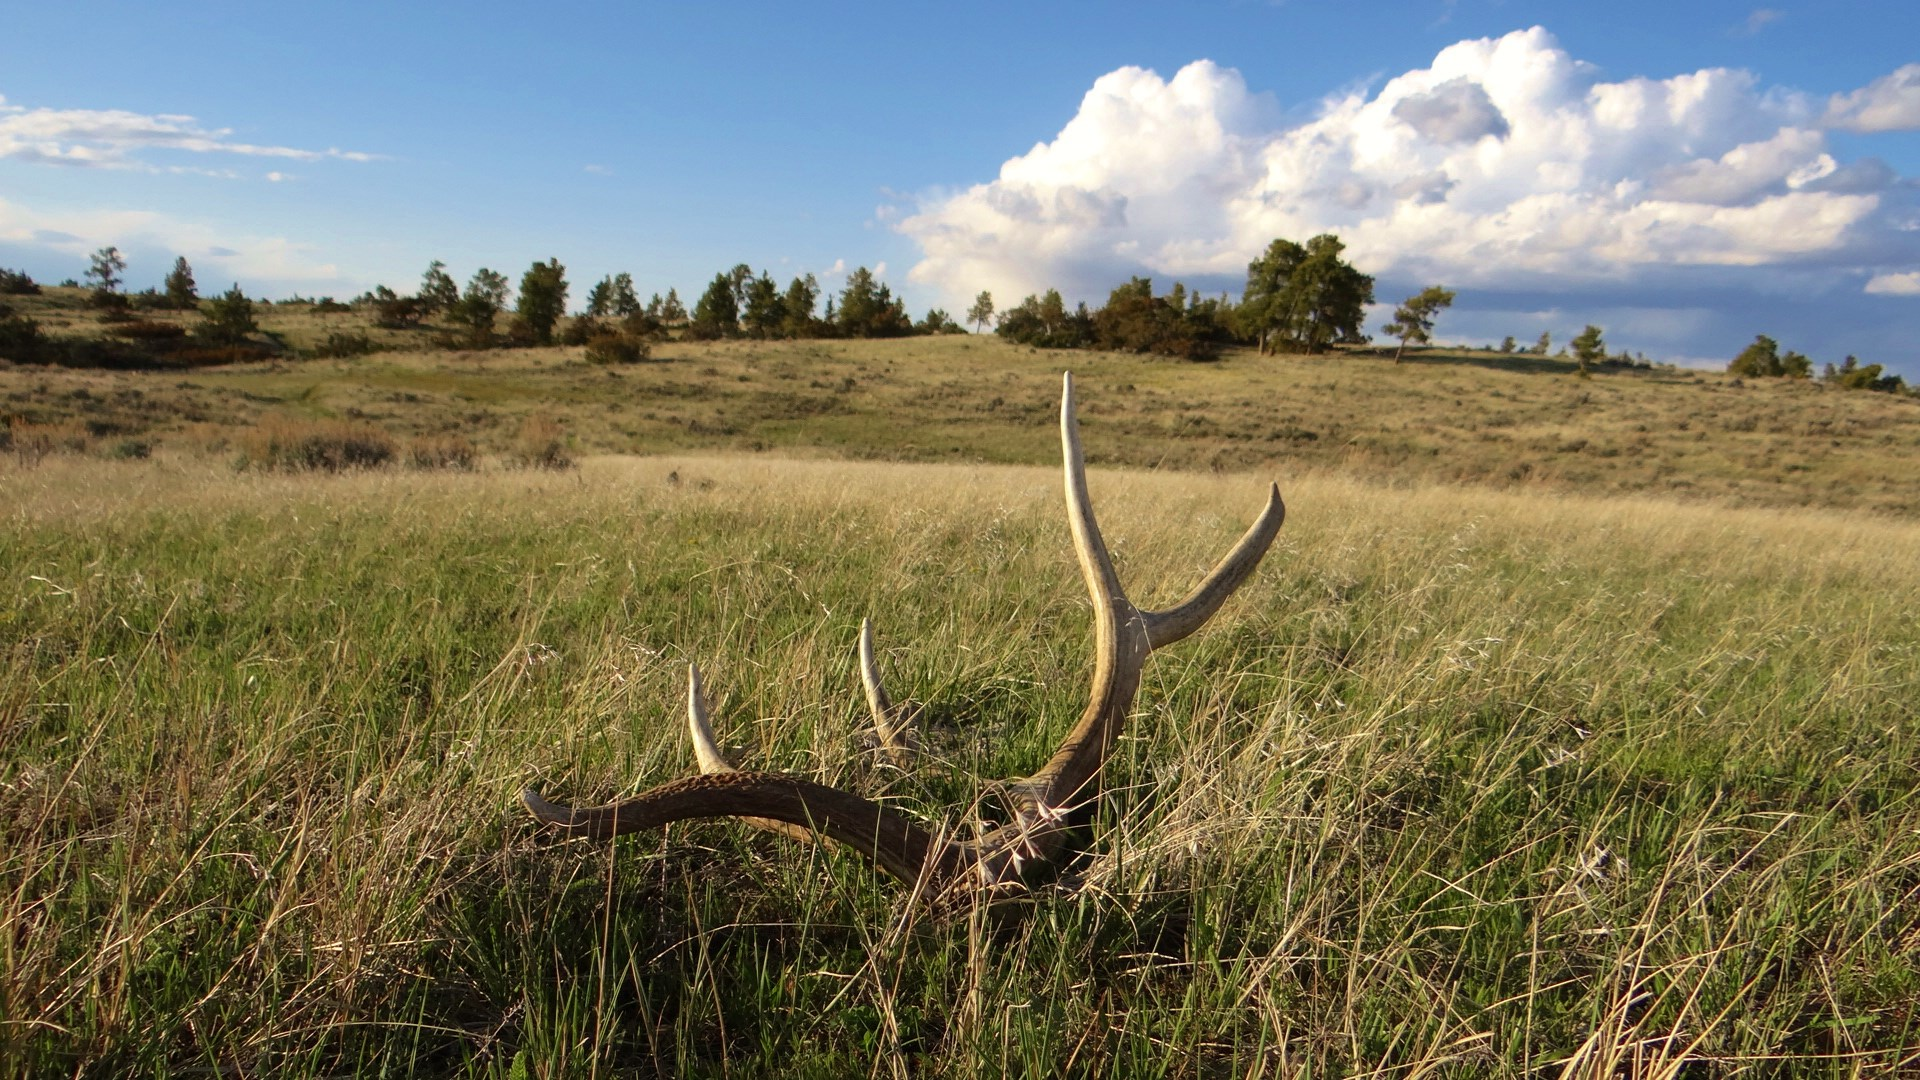 Missouri Breaks Grazing & Hunting Property Land Auction